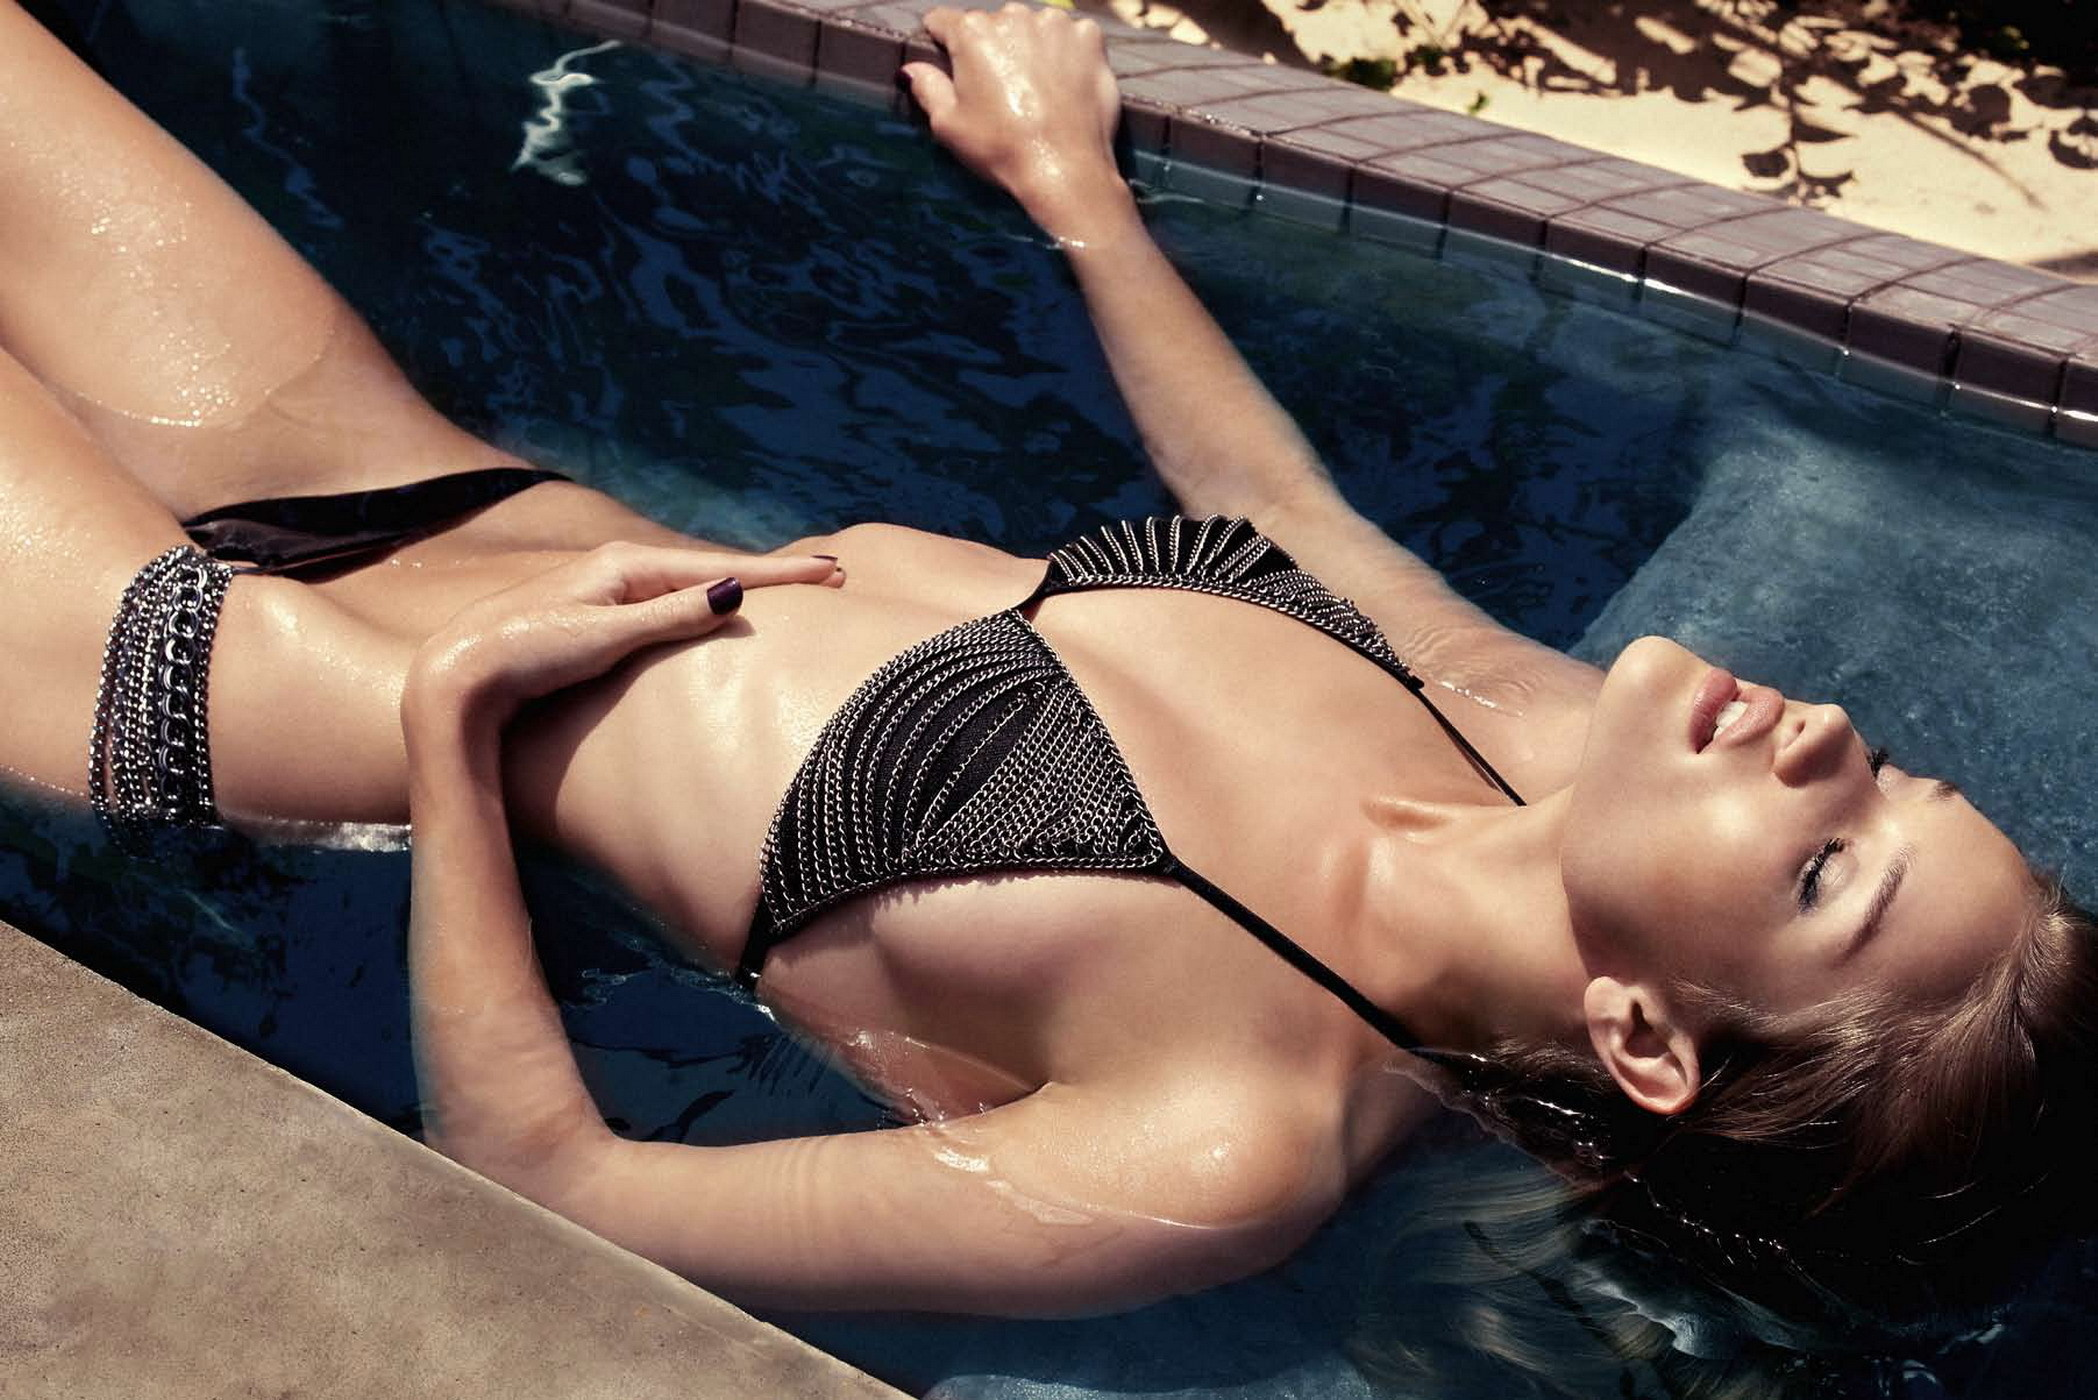 Rosie Huntington Whiteley Hot Pose In The Pool - Rosie Huntington Whiteley Hot Pose In The Pool